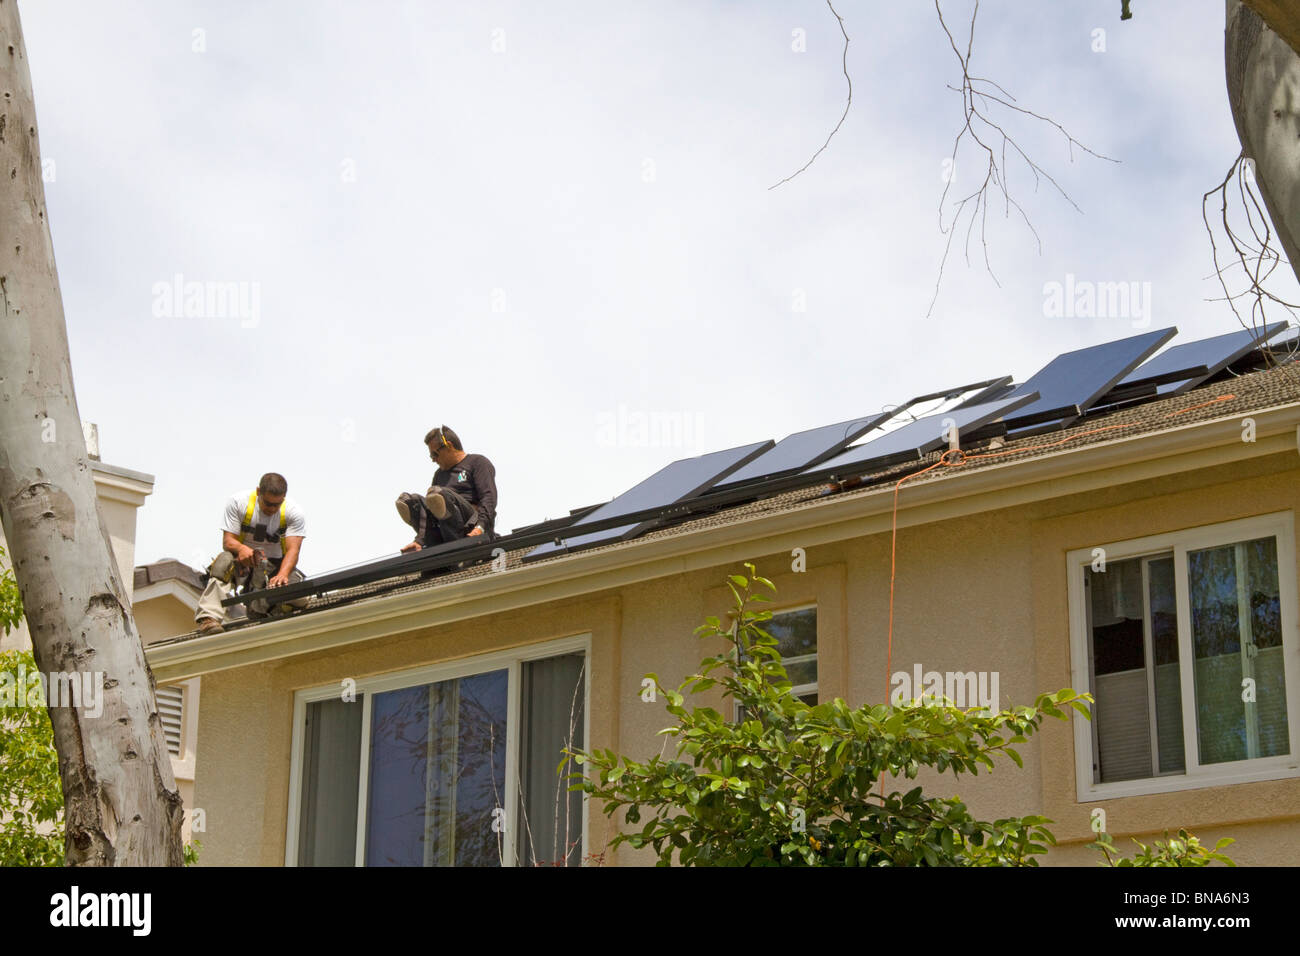 Solar Power Clean Green Energy Panel Roof Home House Generate Electricity  Save Conserve Sun Install Installation New Sunpower